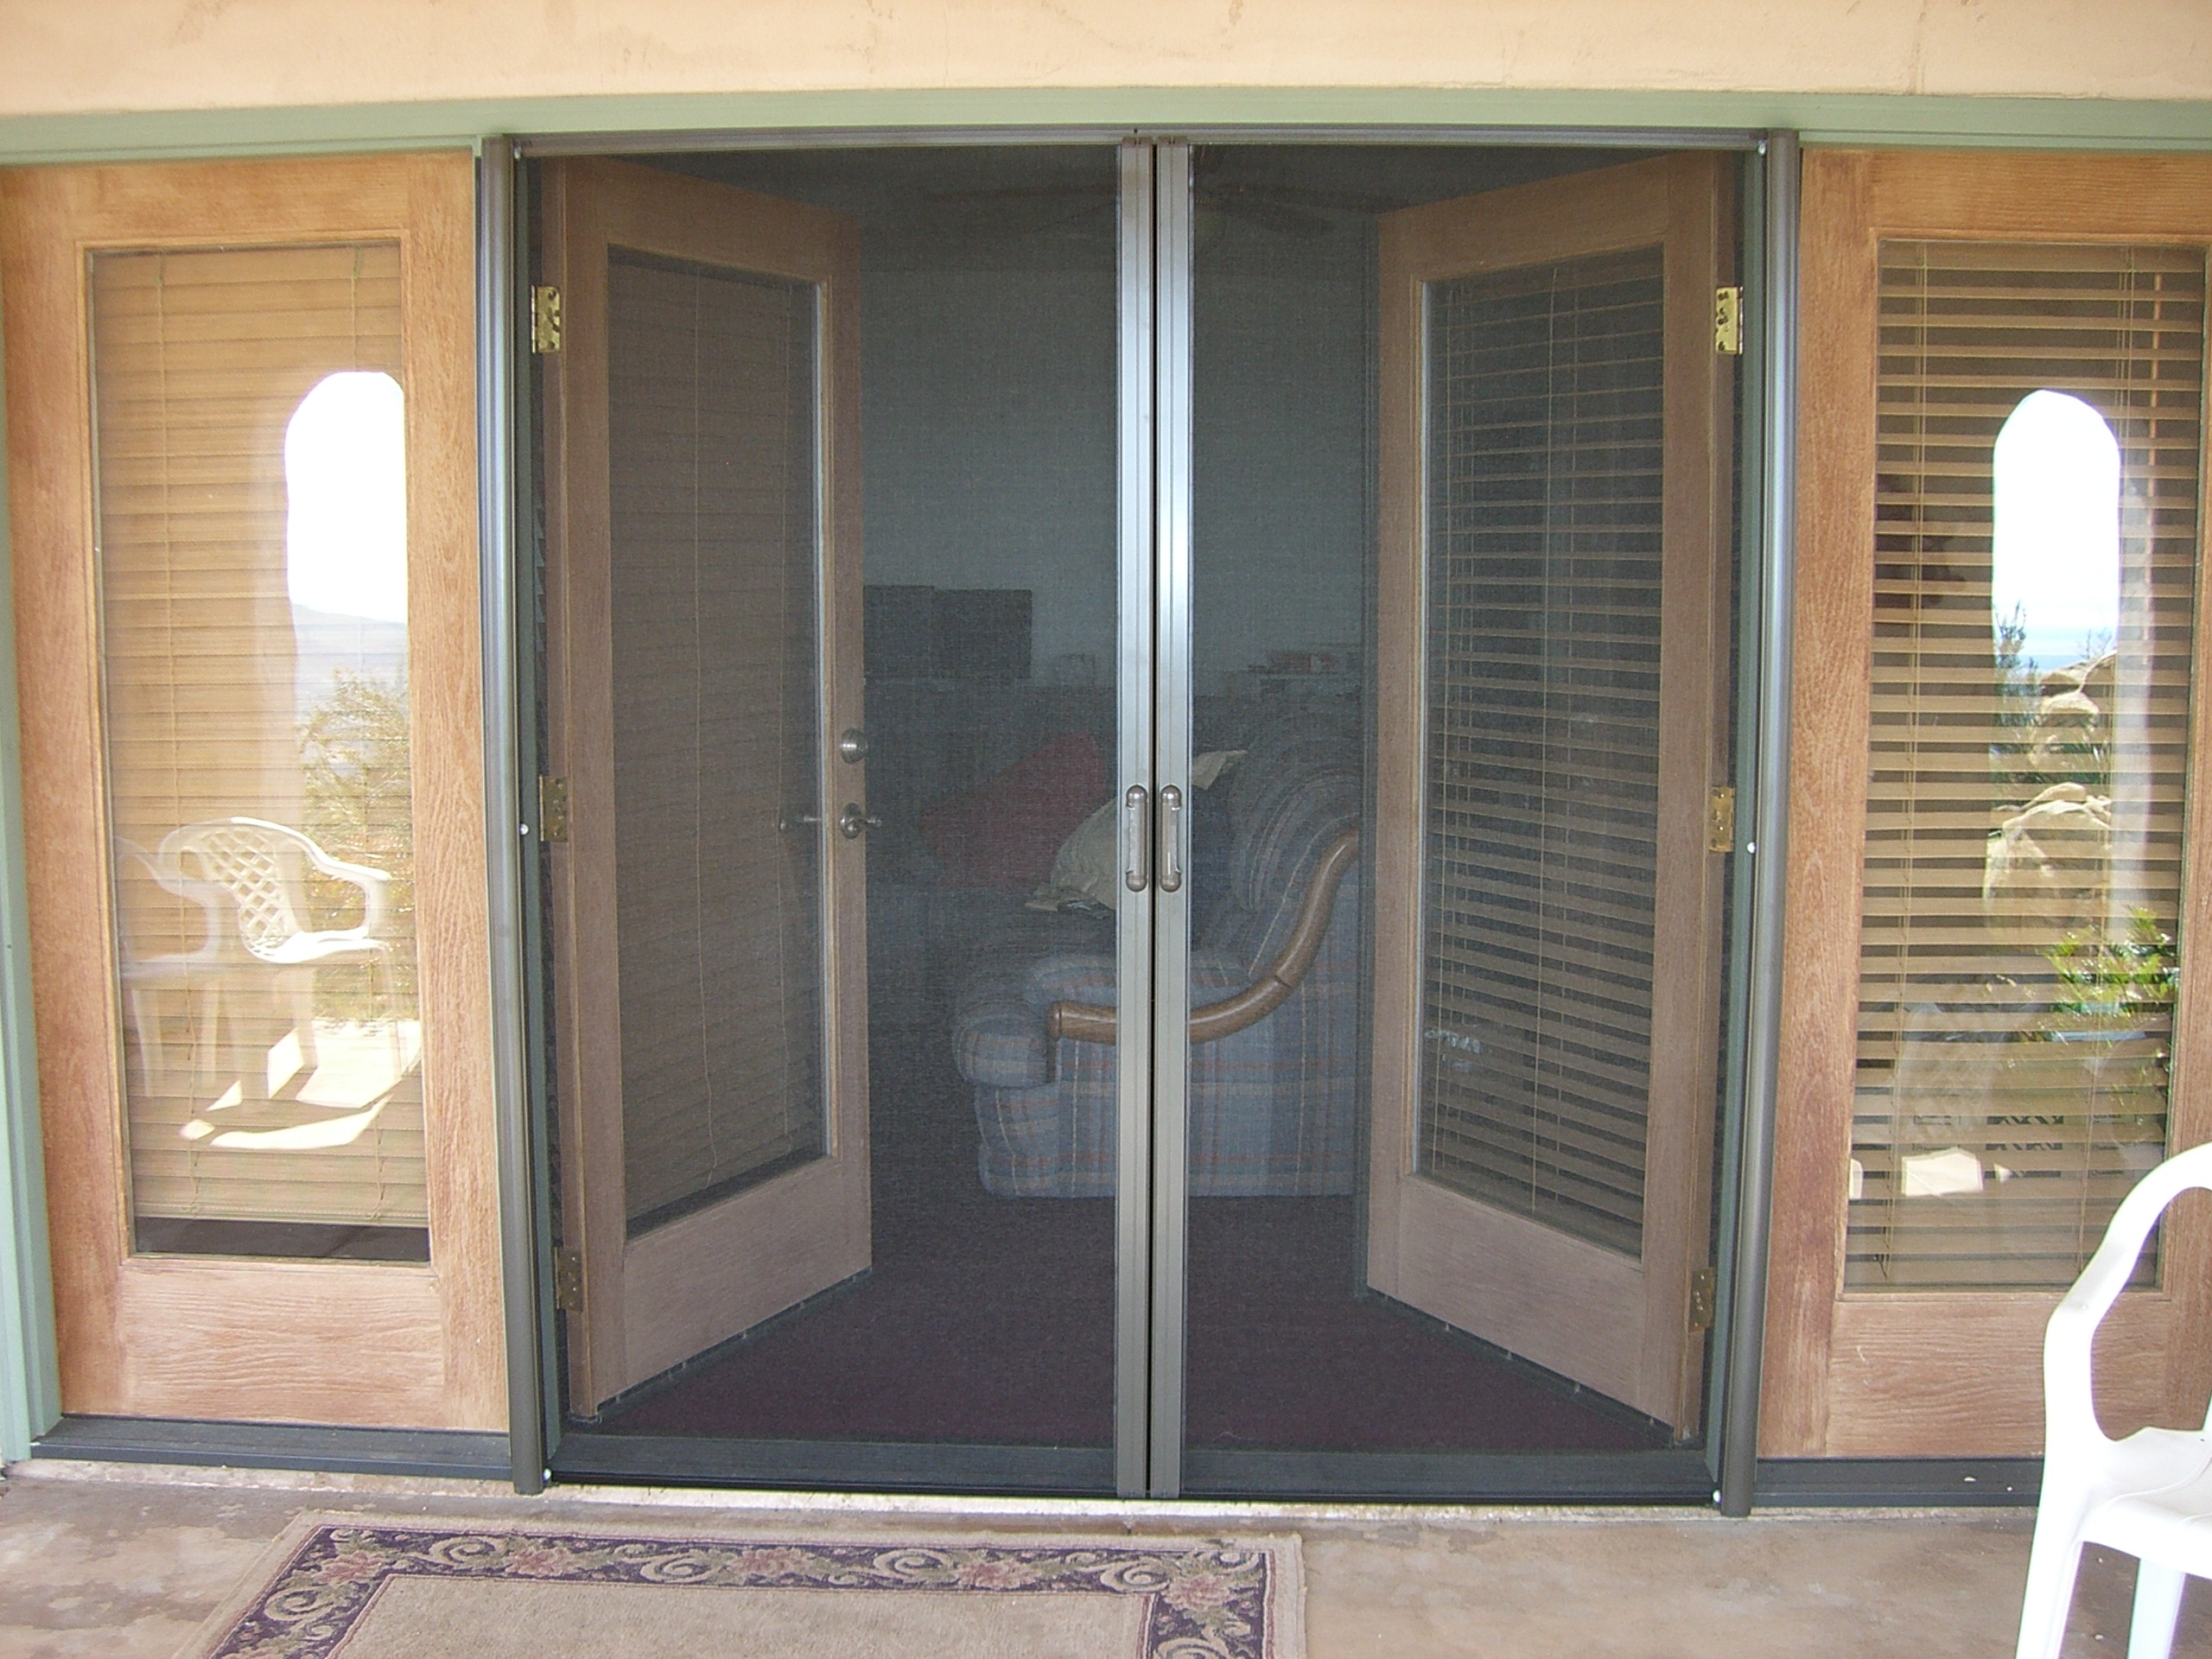 Retractable Screen doors between wondows plus chairs and ceramics floor